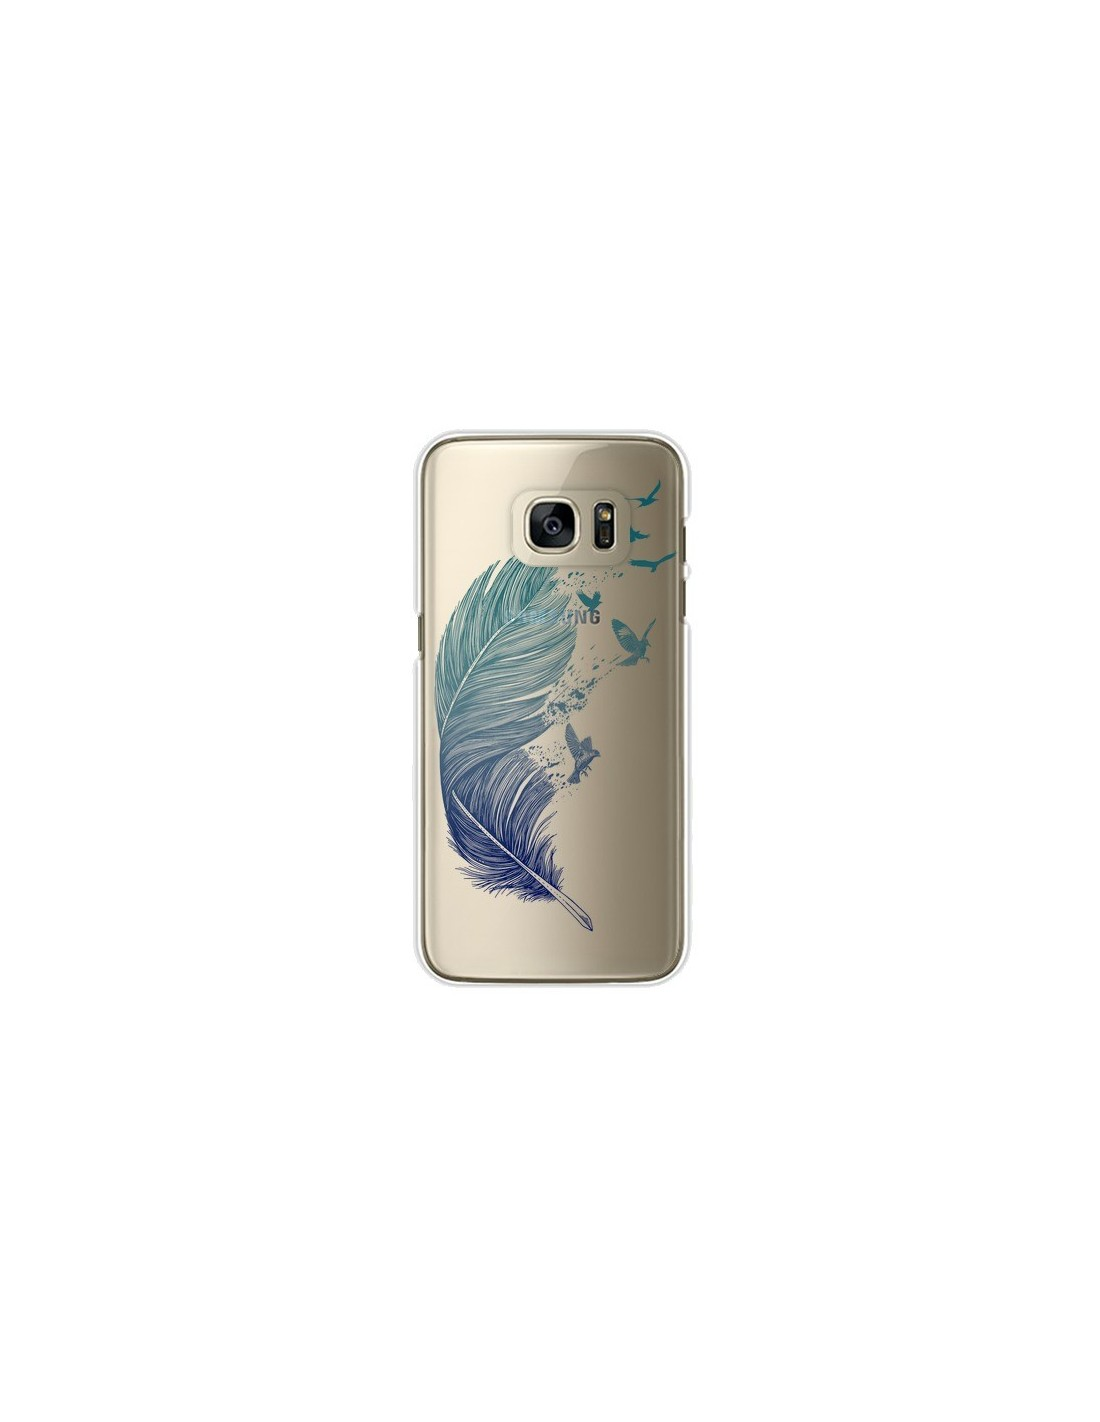 coque plume feather fly away transparente pour samsung galaxy s7 edge rachel caldwell. Black Bedroom Furniture Sets. Home Design Ideas